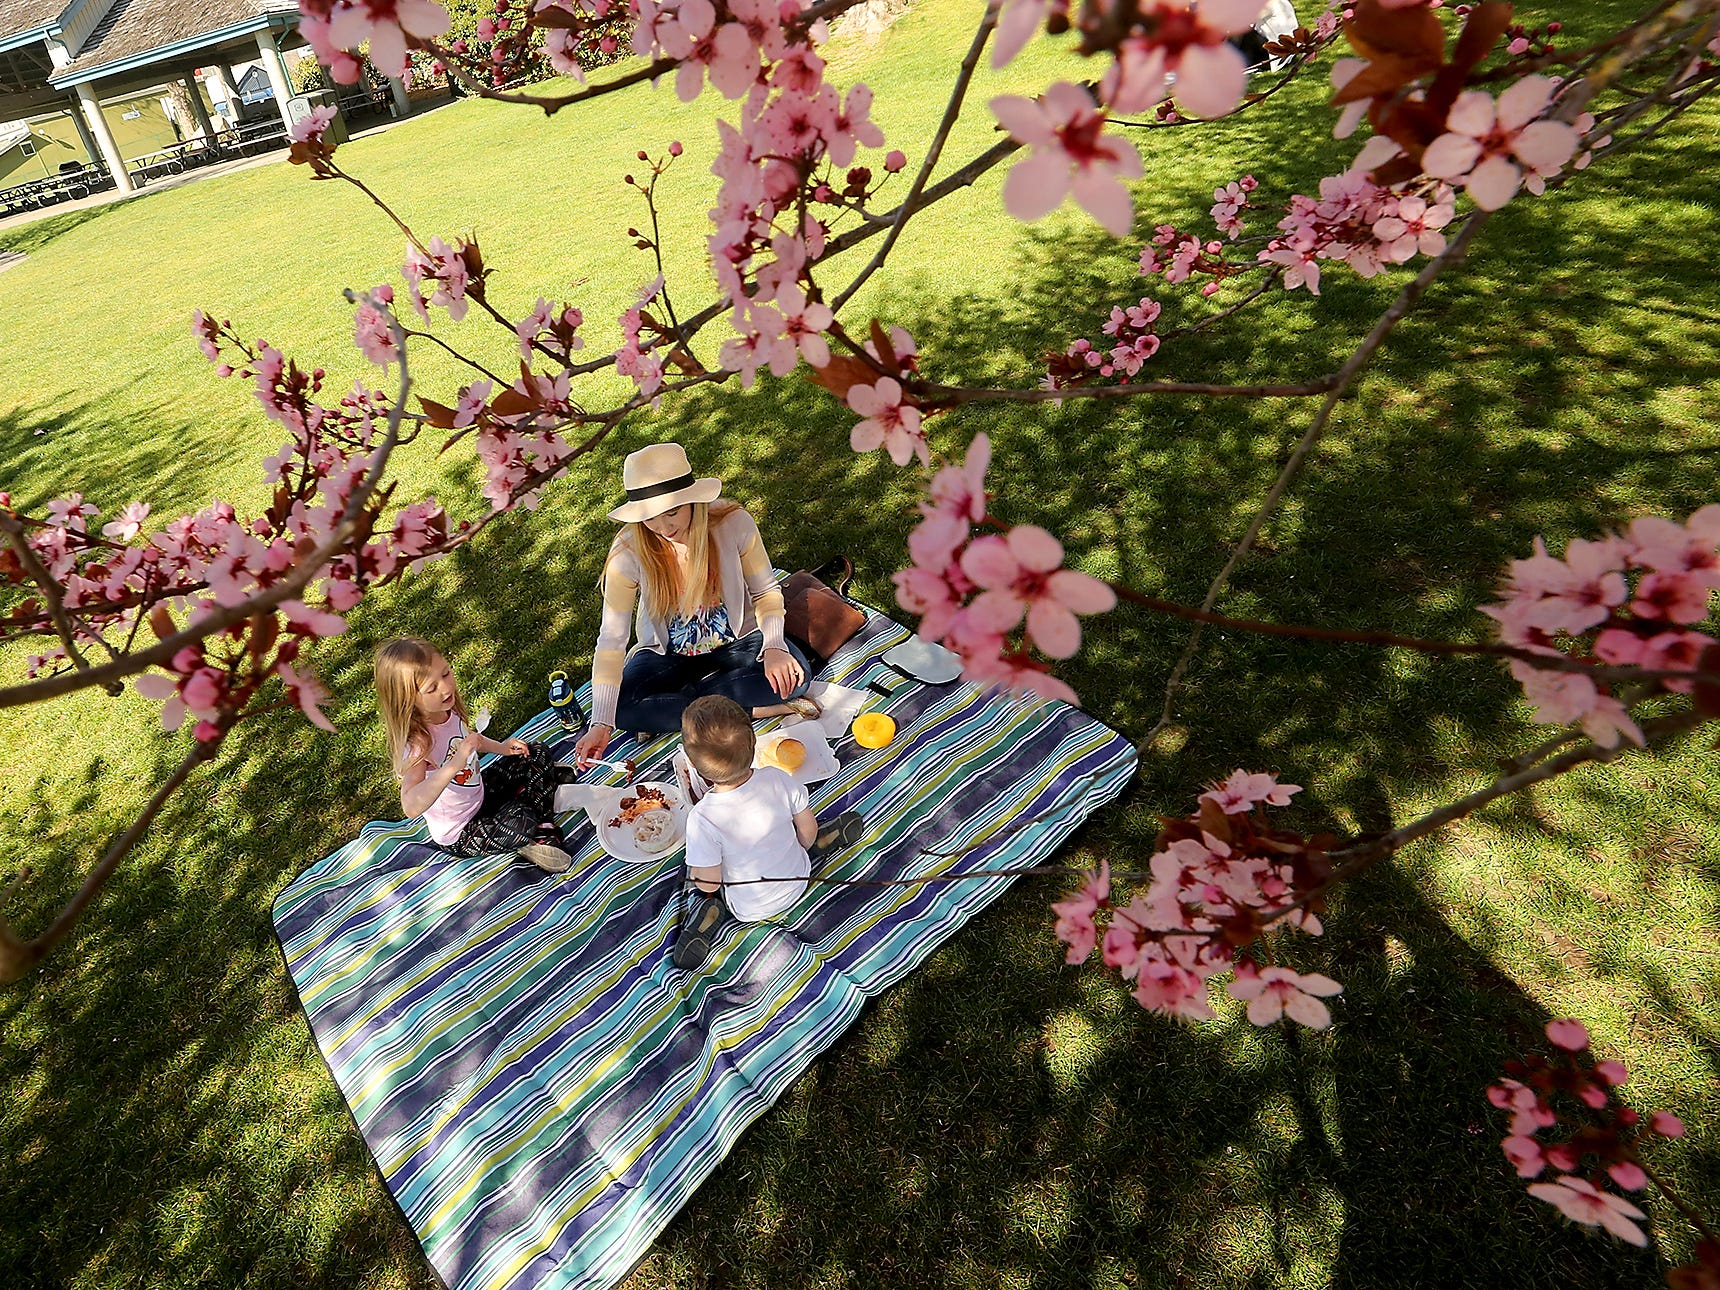 Lauren Wheeler and her children Elaine, 5, and Cale , 2, celebrate the first day of Spring with a picnic lunch underneath the flowering trees at Silverdale Waterfront Park on Wednesday, March 20, 2019.